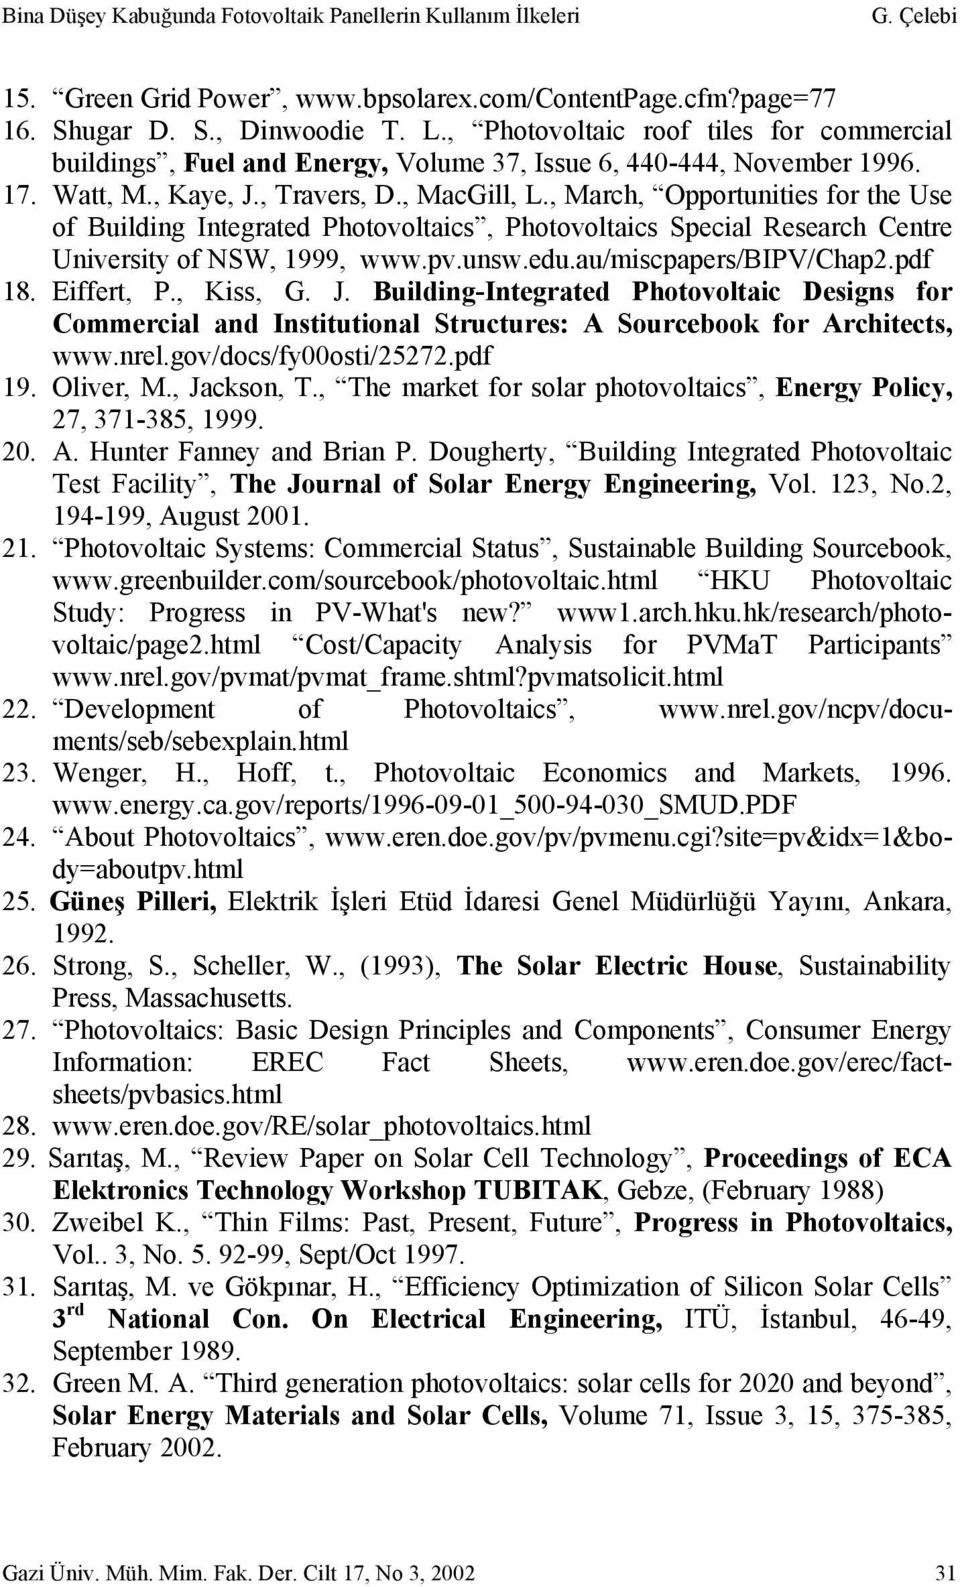 , March, Opportunities for the Use of Building Integrated Photovoltaics, Photovoltaics Special Research Centre University of NSW, 1999, www.pv.unsw.edu.au/miscpapers/bipv/chap2.pdf 18. Eiffert, P.